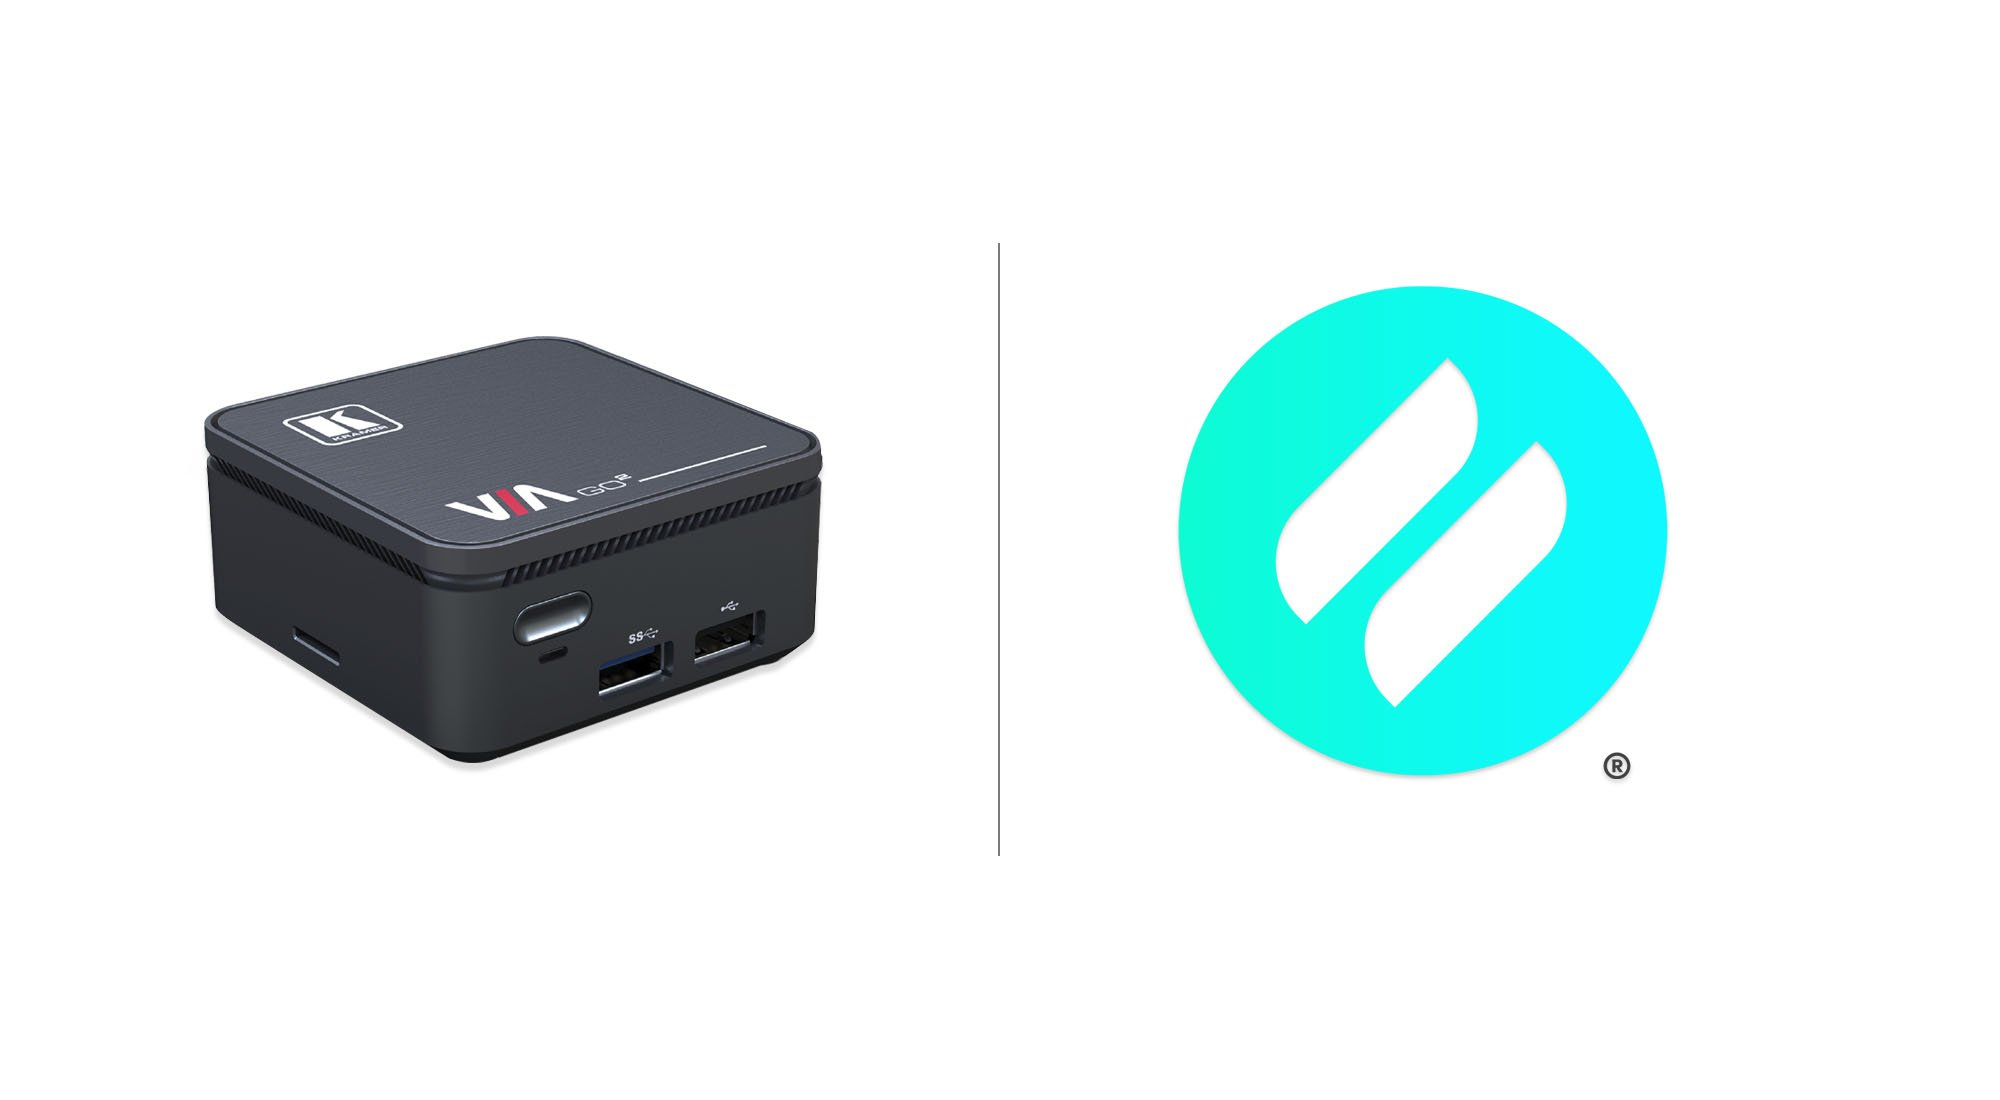 ditto logo and kramer device